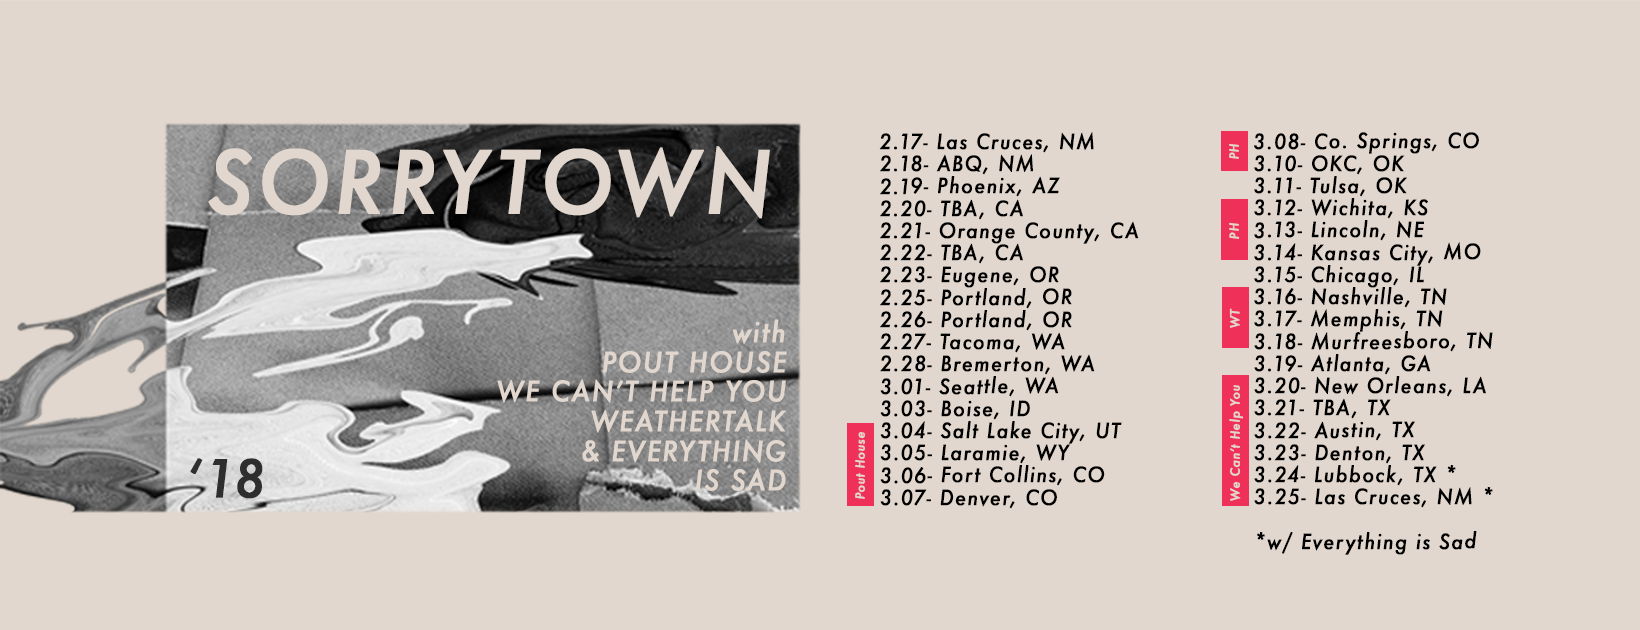 sorry town tour.png